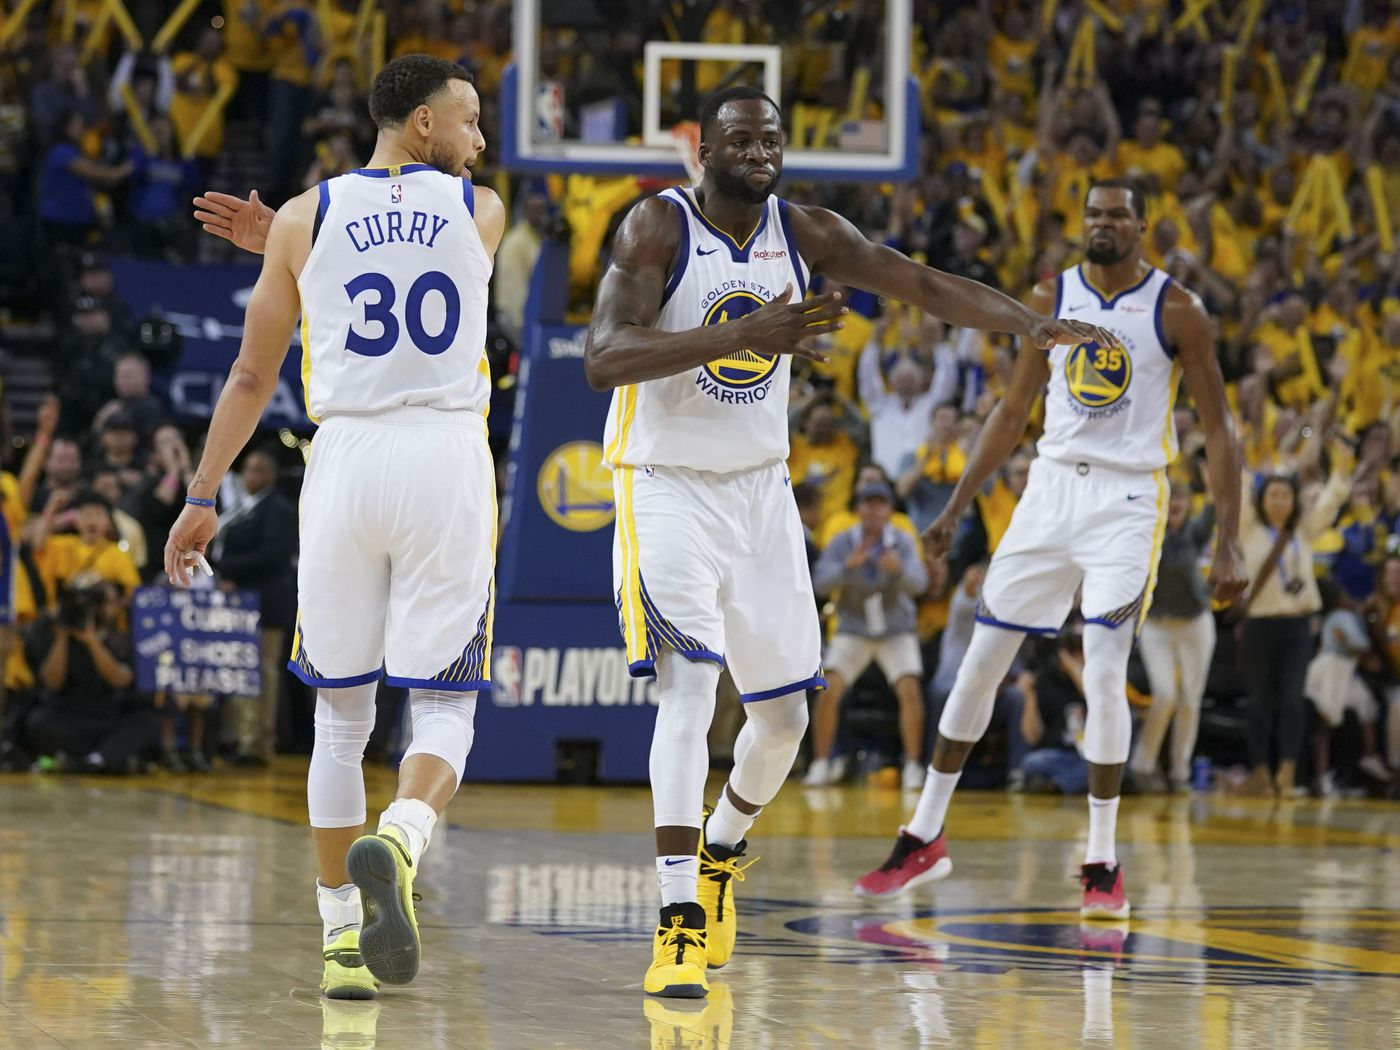 334b65560b4f Warriors Rockets Game 2 preview  The other side of the hot stove - Golden  State Of Mind